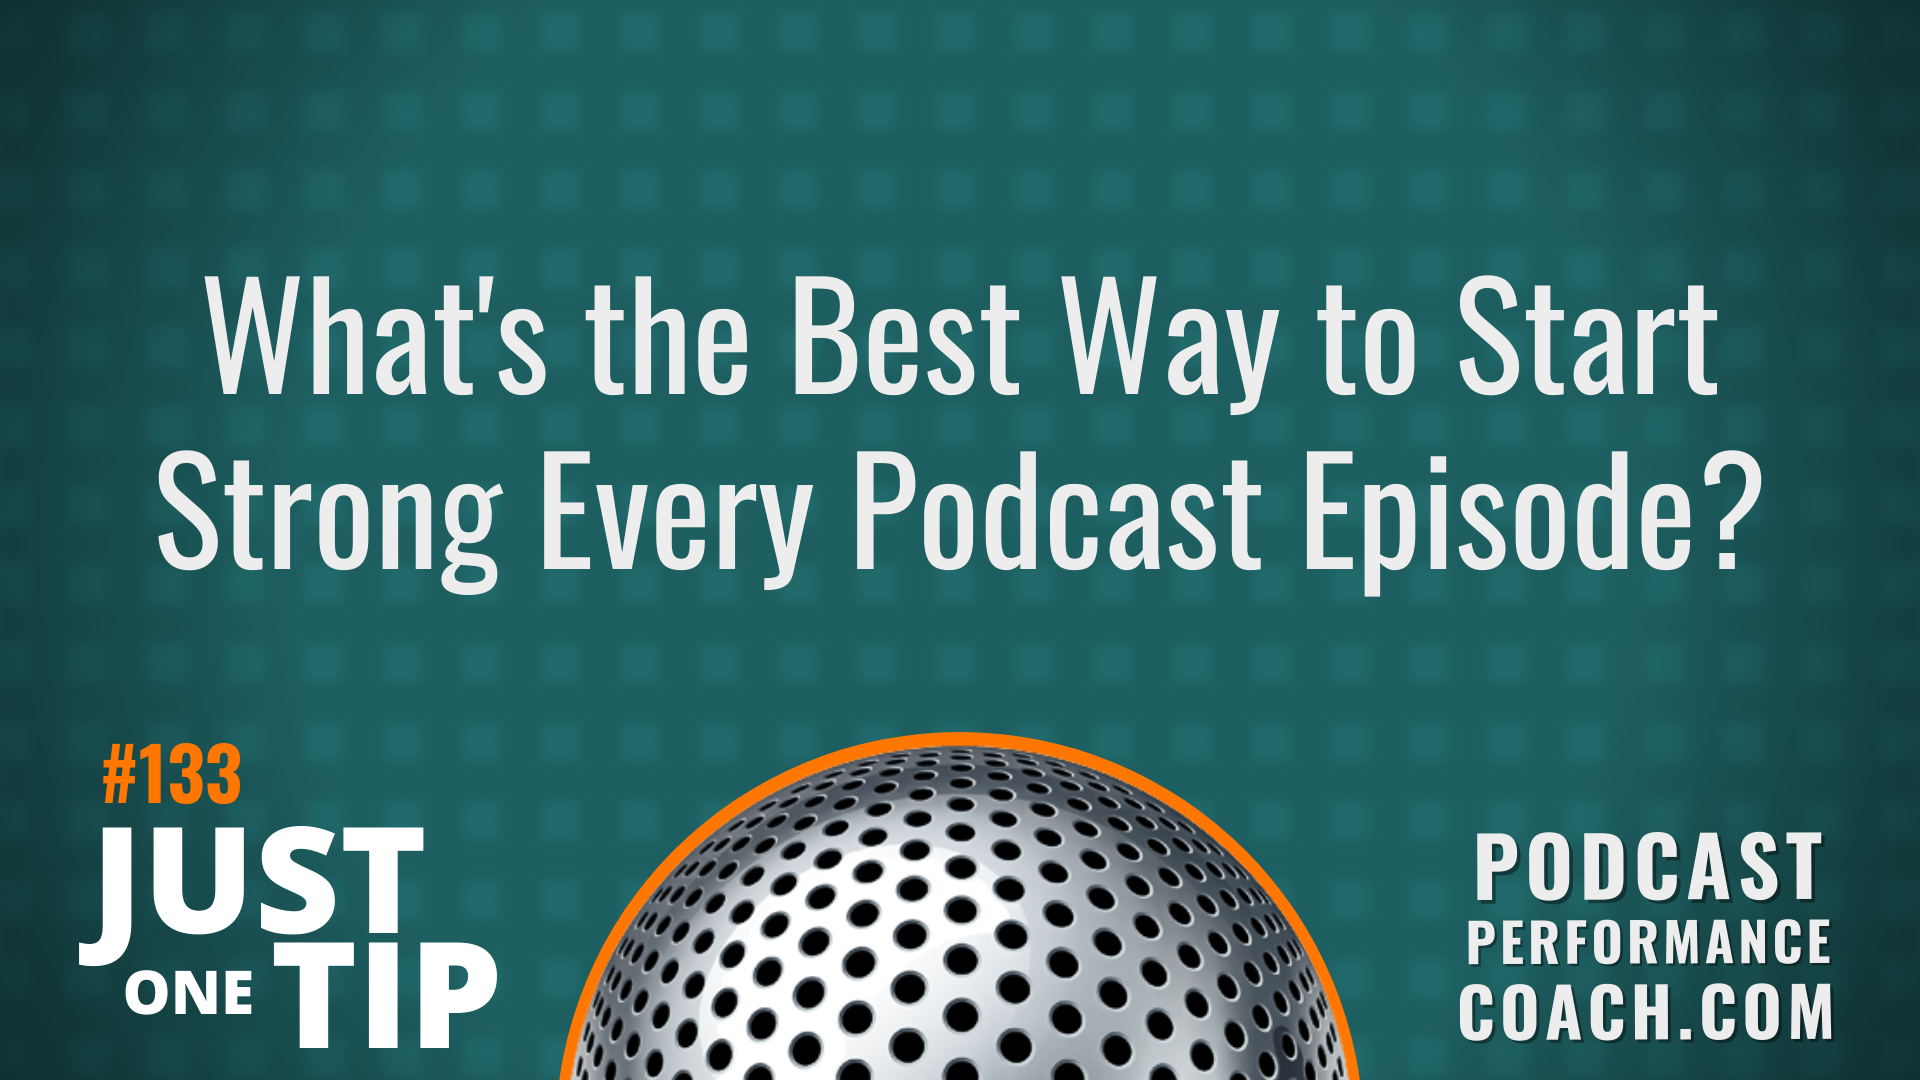 133 What's the Best Way to Start Strong Every Podcast Episode?